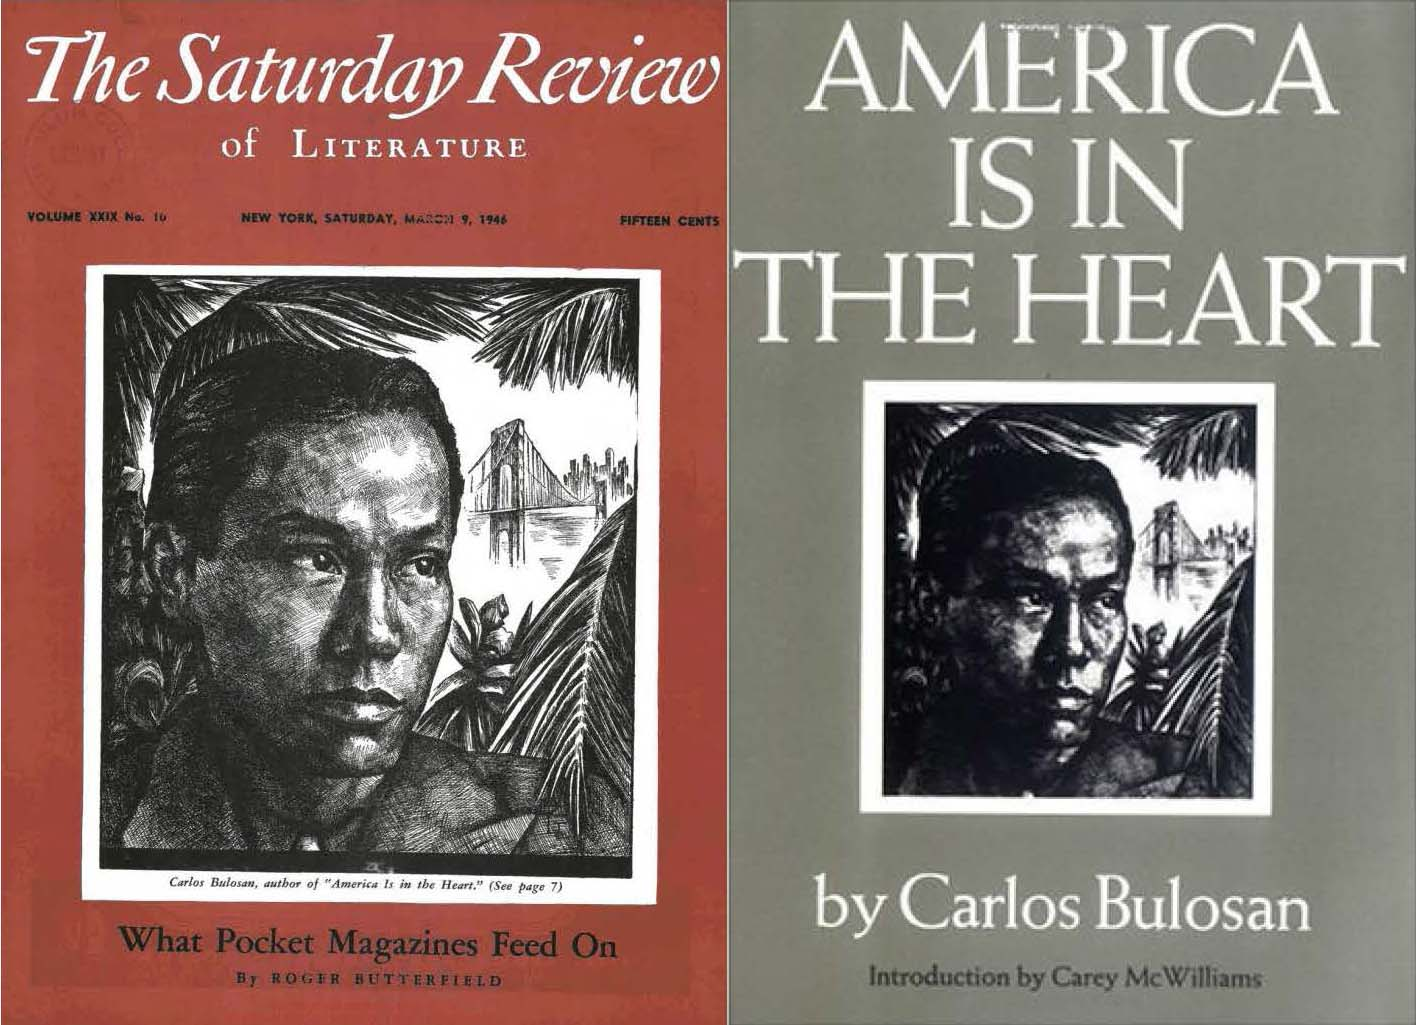 two faces of america by carlos bulosan Two faces of america by carlos bulosanbiography carlos sampayan bulosan ( november 2, 1913 – september 11, 1956) was an english-langua.